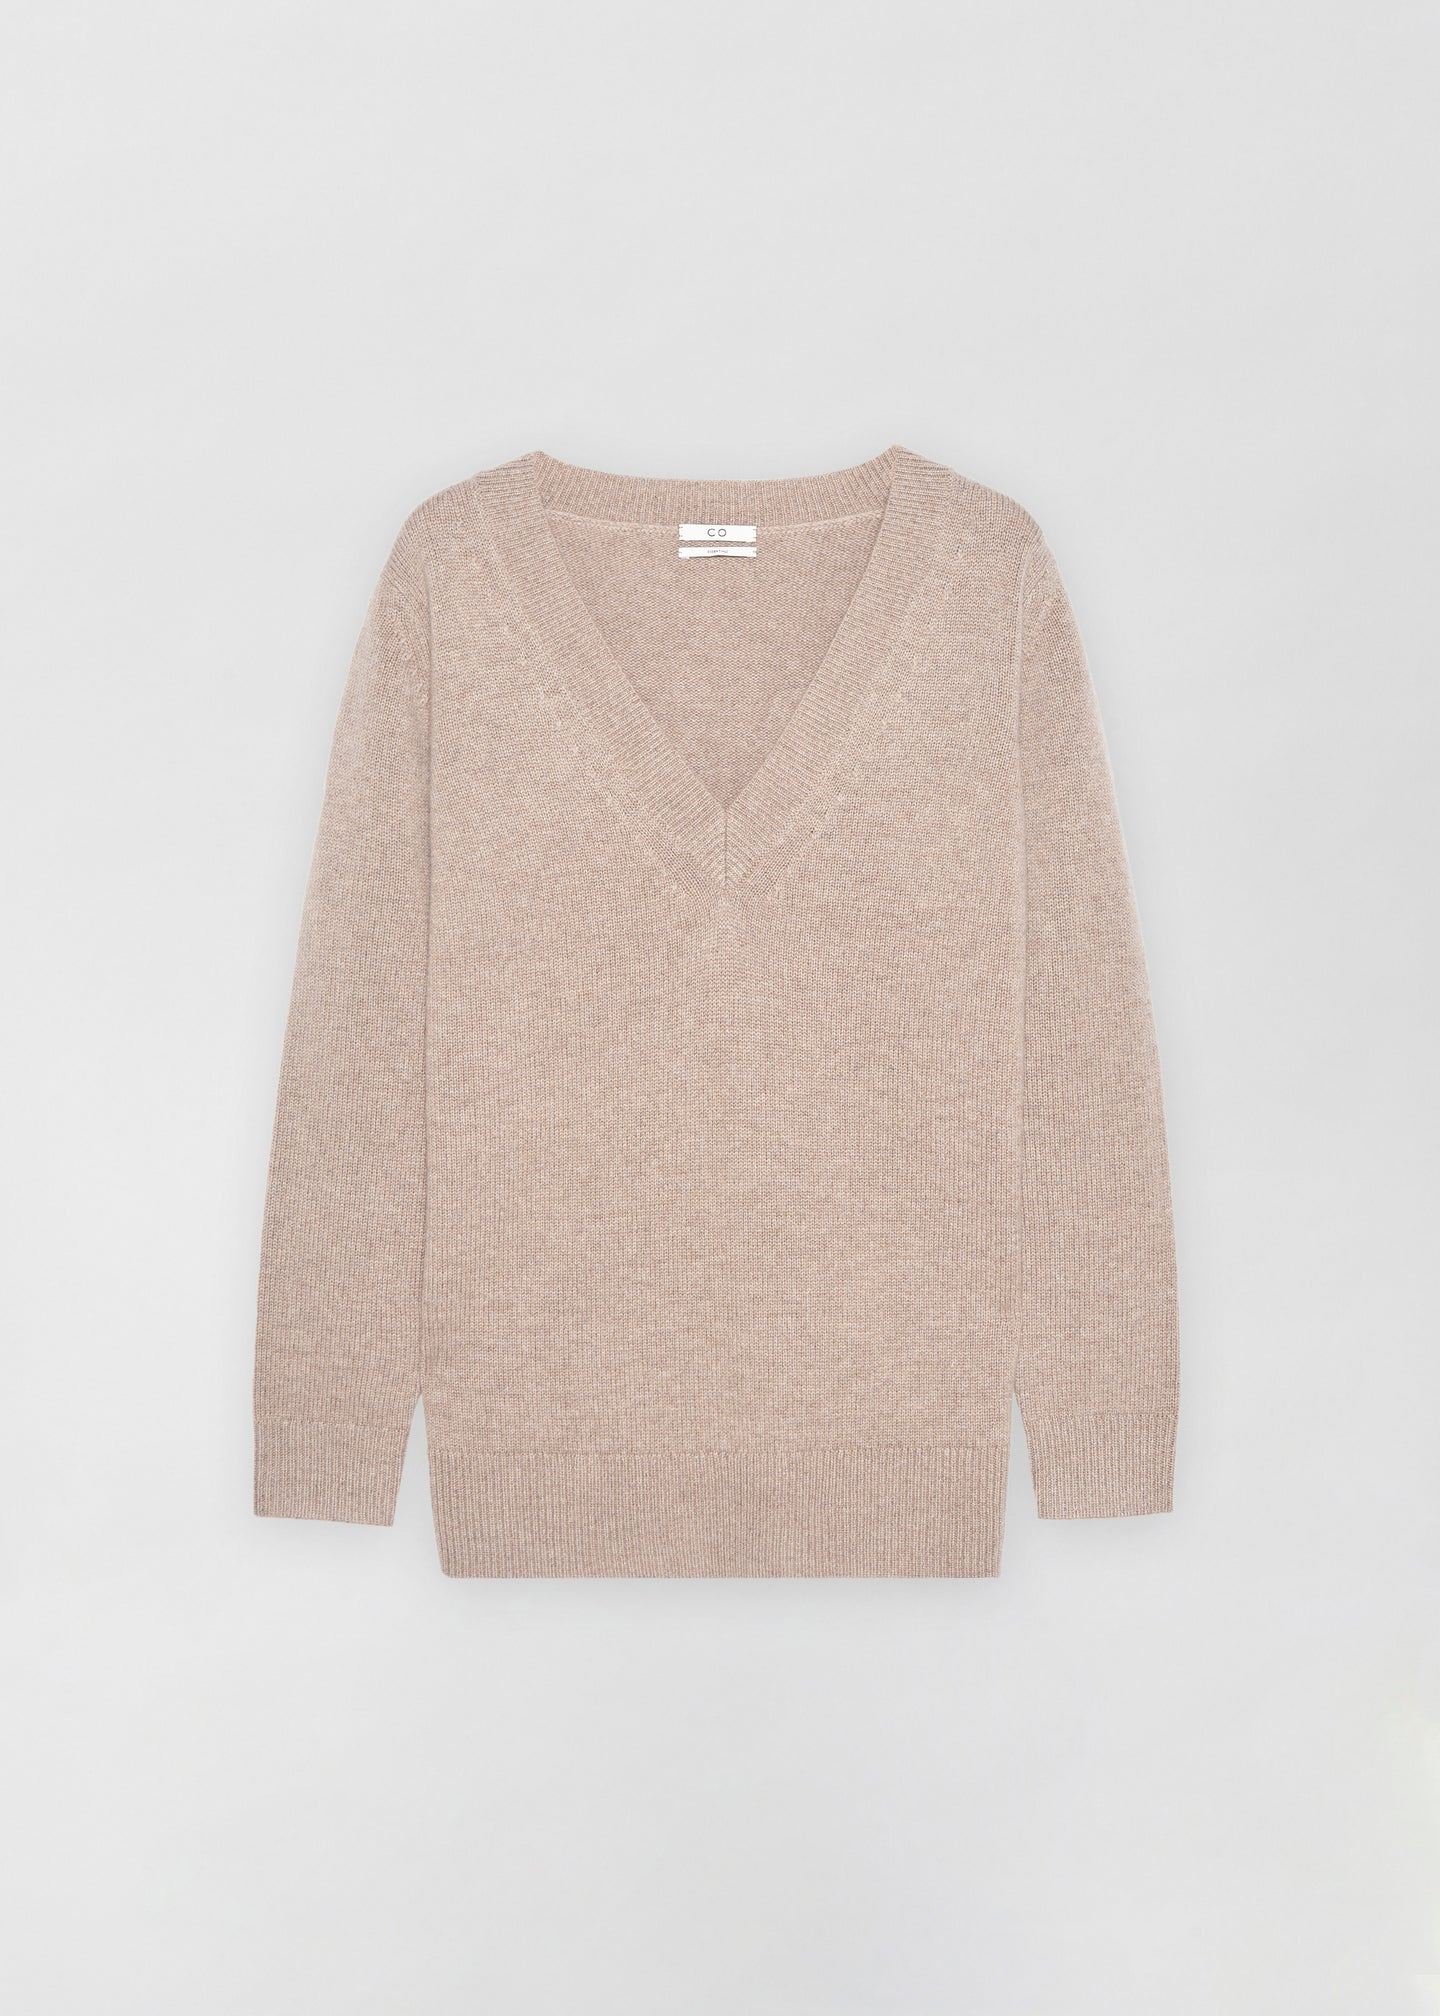 CO - V-Neck Boyfriend Sweater - Taupe